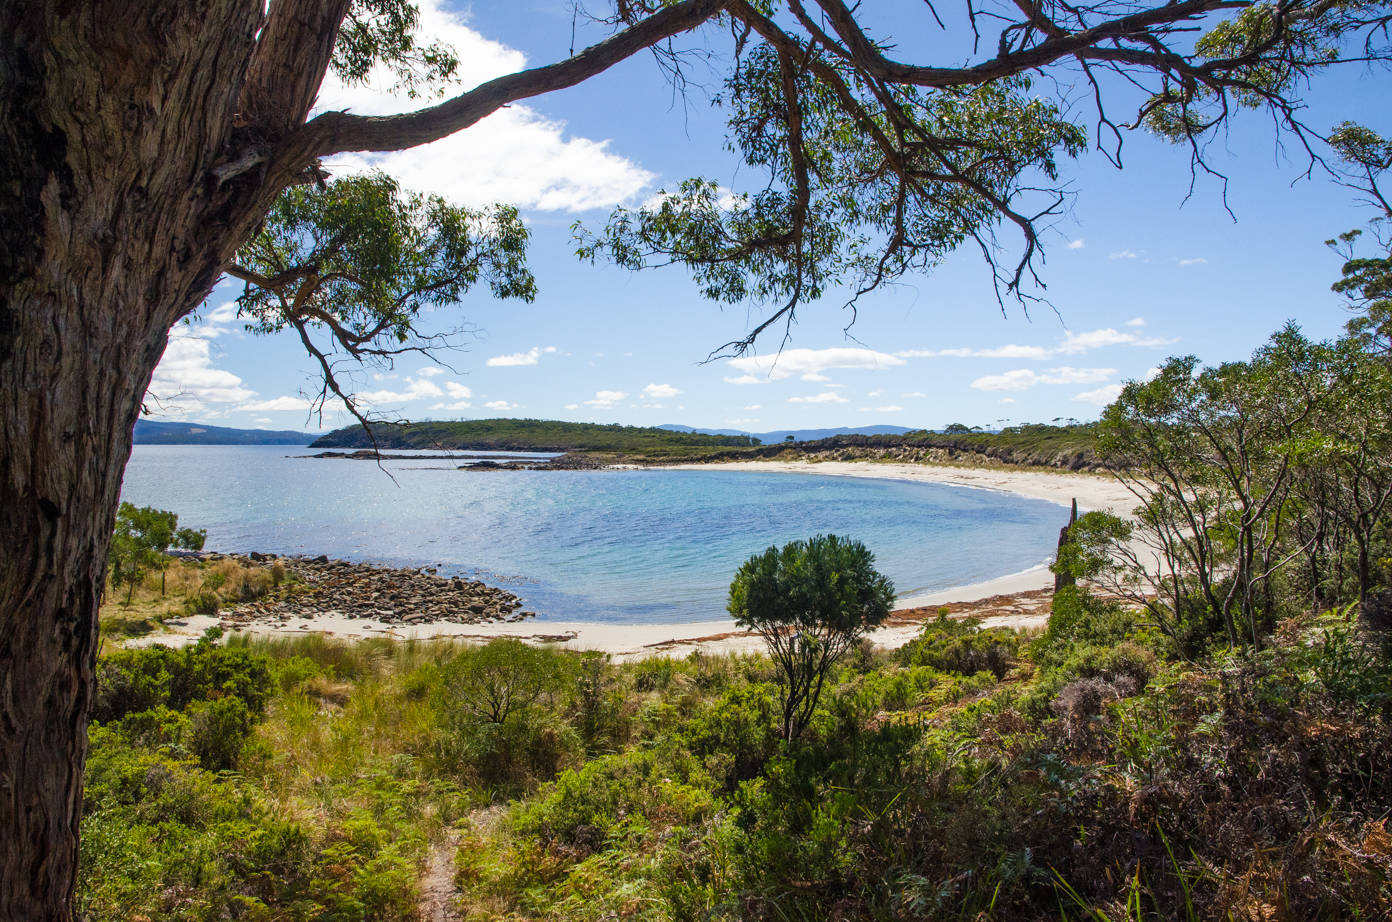 Bruny Island is one of Tasmania's most photogenic locations